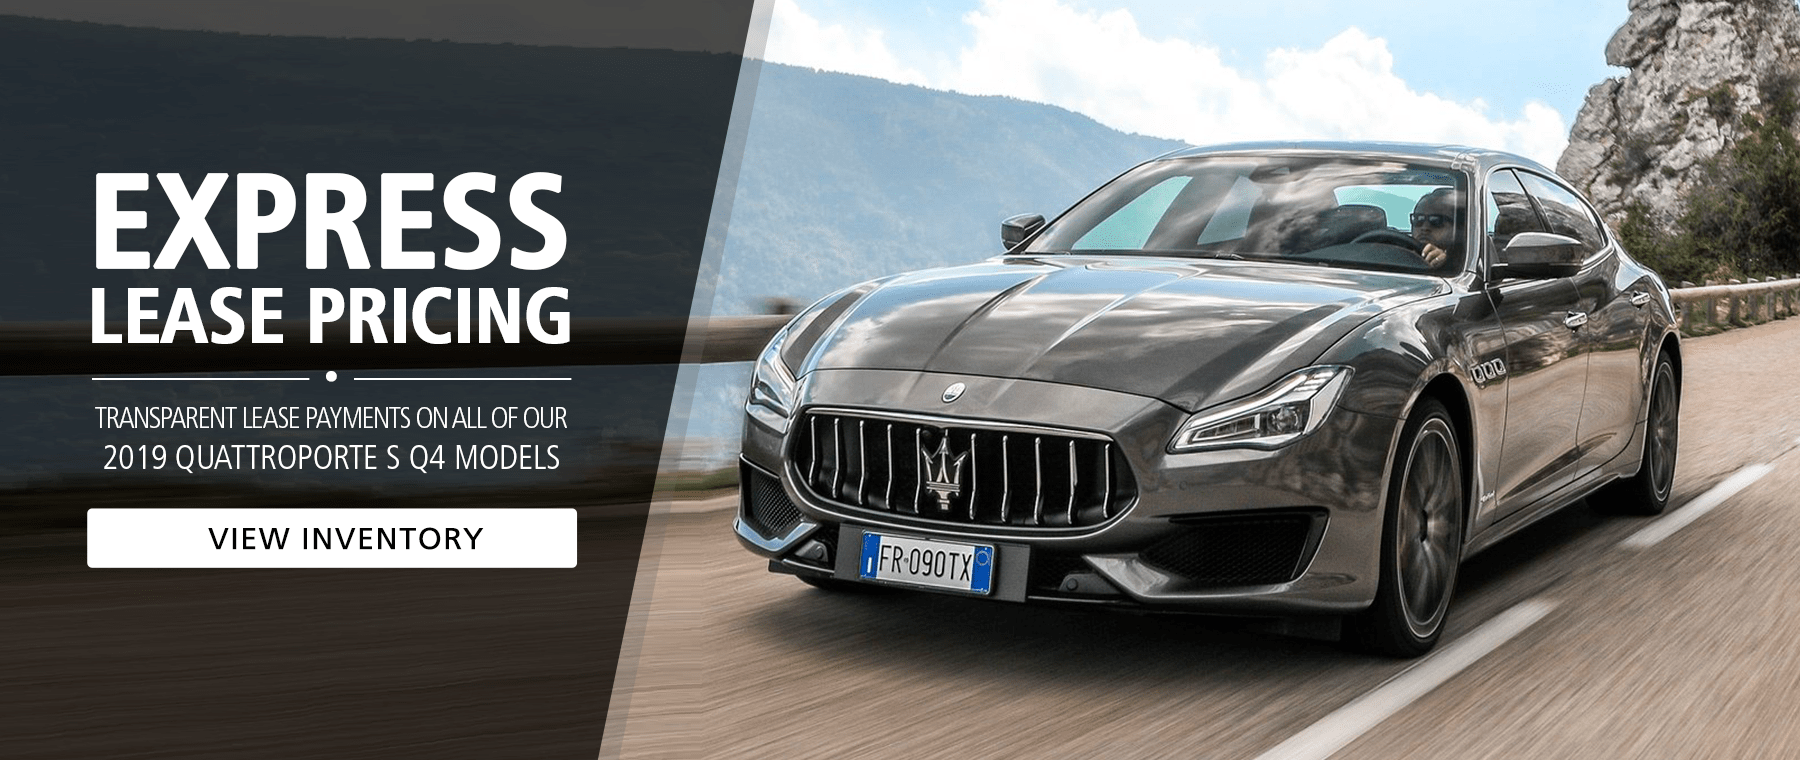 Special Lease Pricing - Maserati Quattroporte